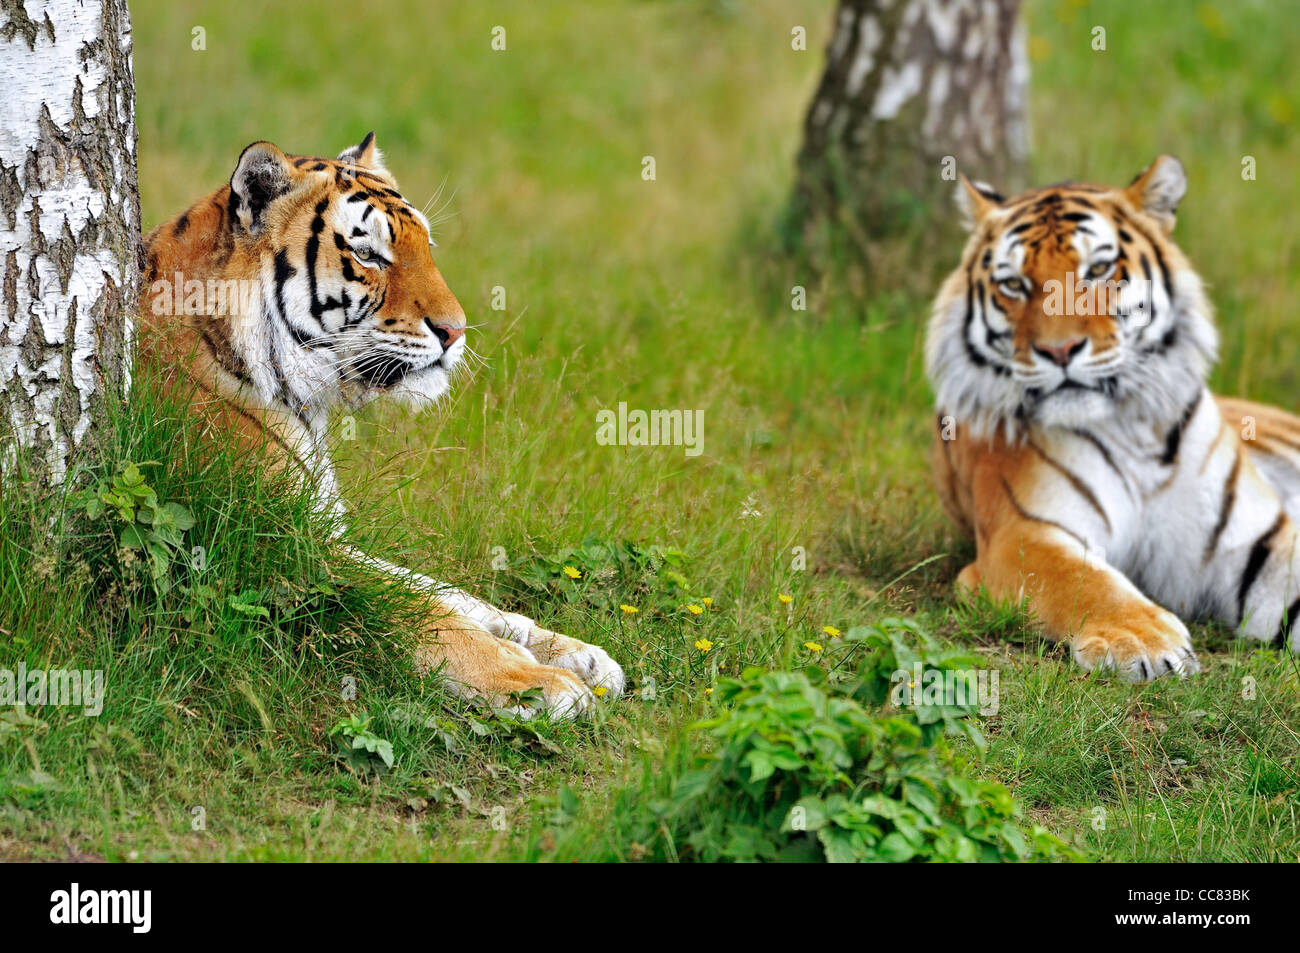 Two Siberian tigers / Amur tigers (Panthera tigris altaica) resting among trees, native to Russia and China - Stock Image